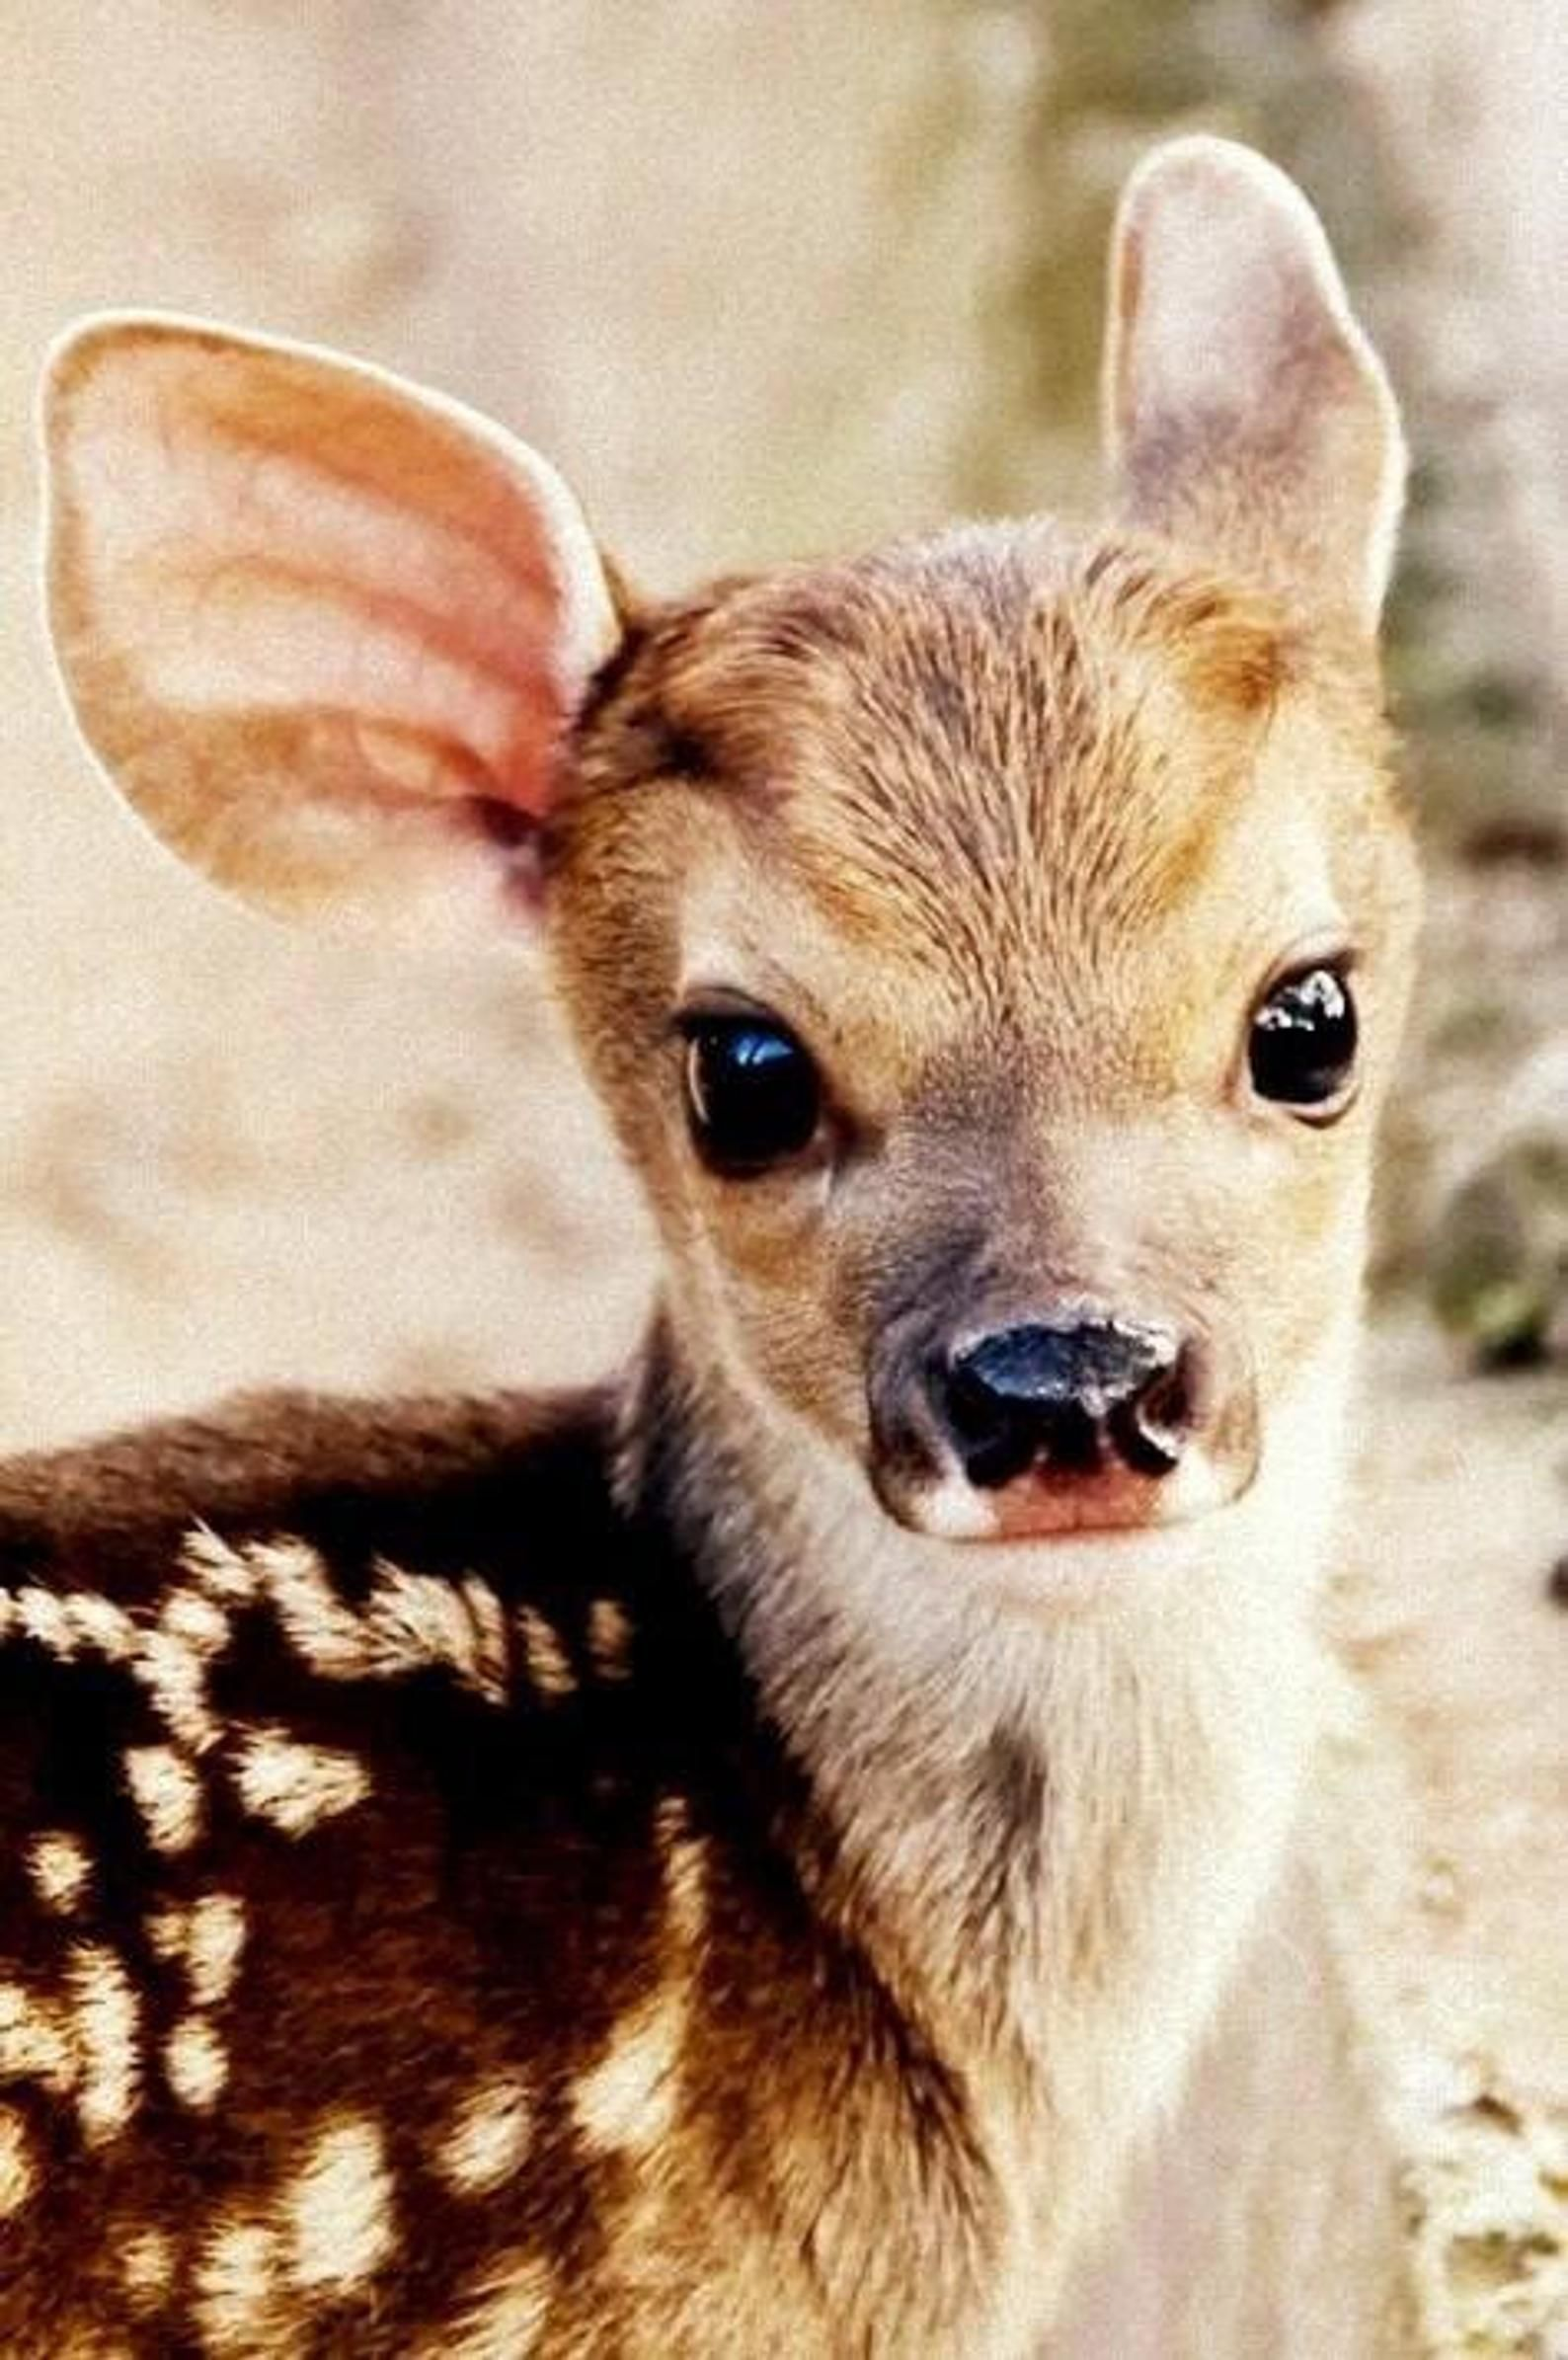 Baby Deer Photograph 8x10 Fabric Block Great for